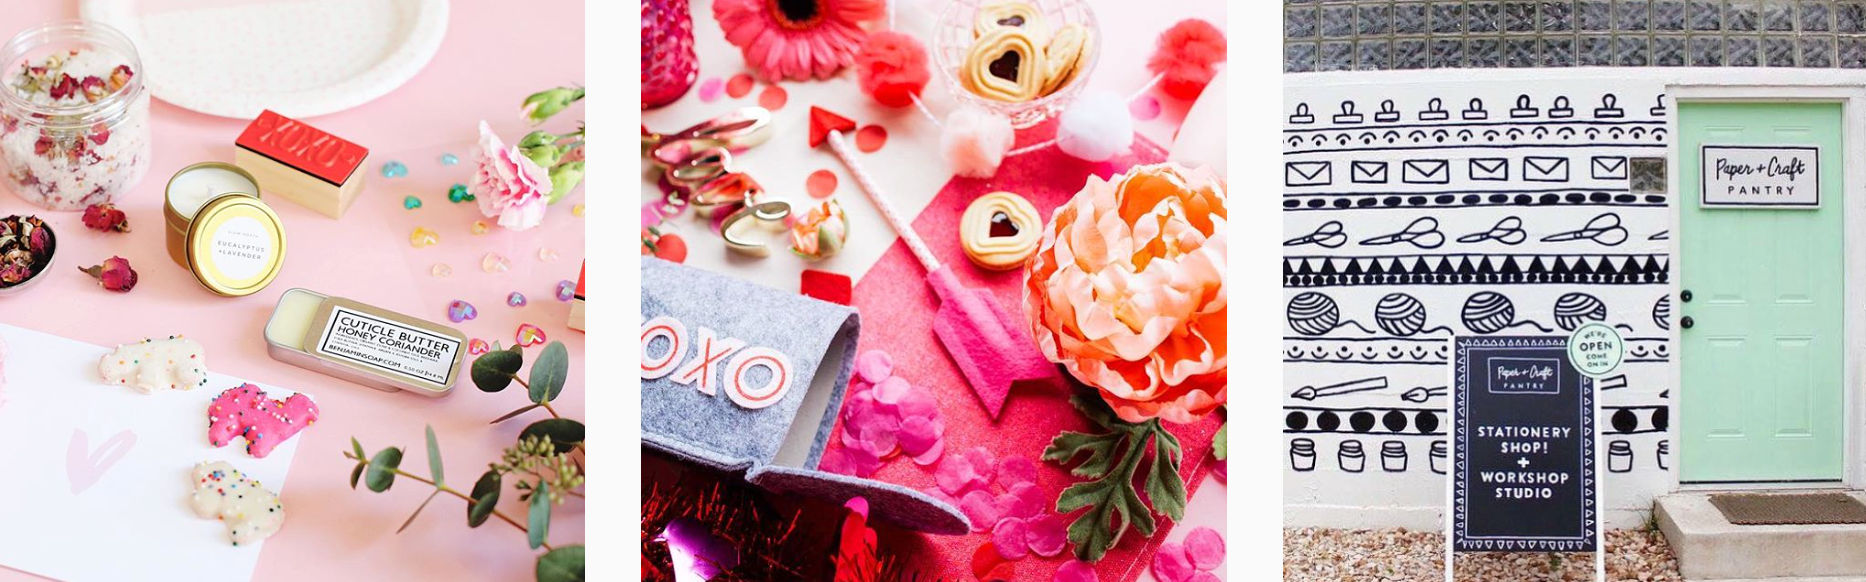 Planoly's Guide to Valentine's Day - PLANOLY Blog Paper Craft Pantry